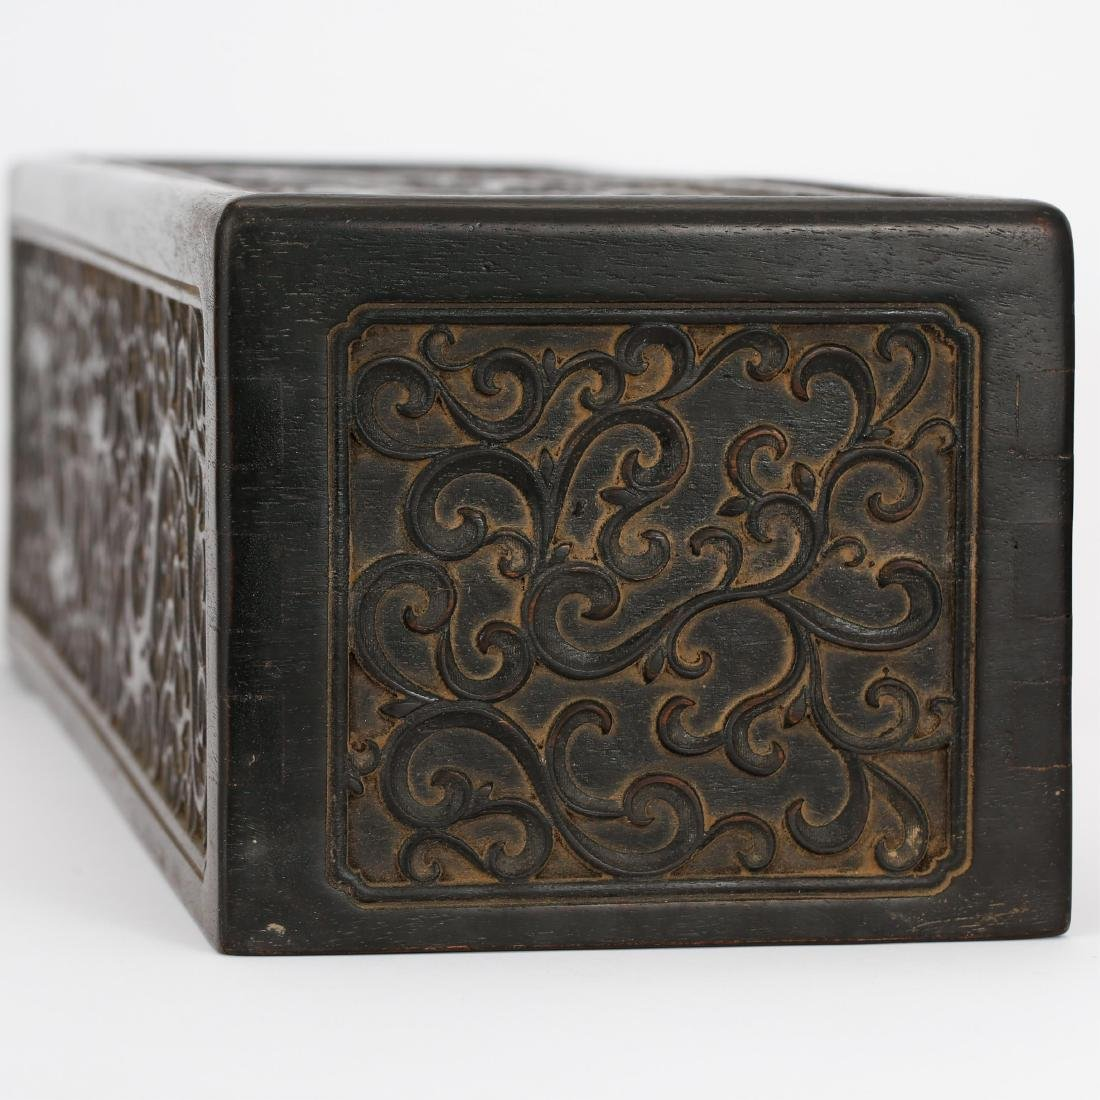 CHINESE ZITAN WOOD SCROLL COVER BOX - 9